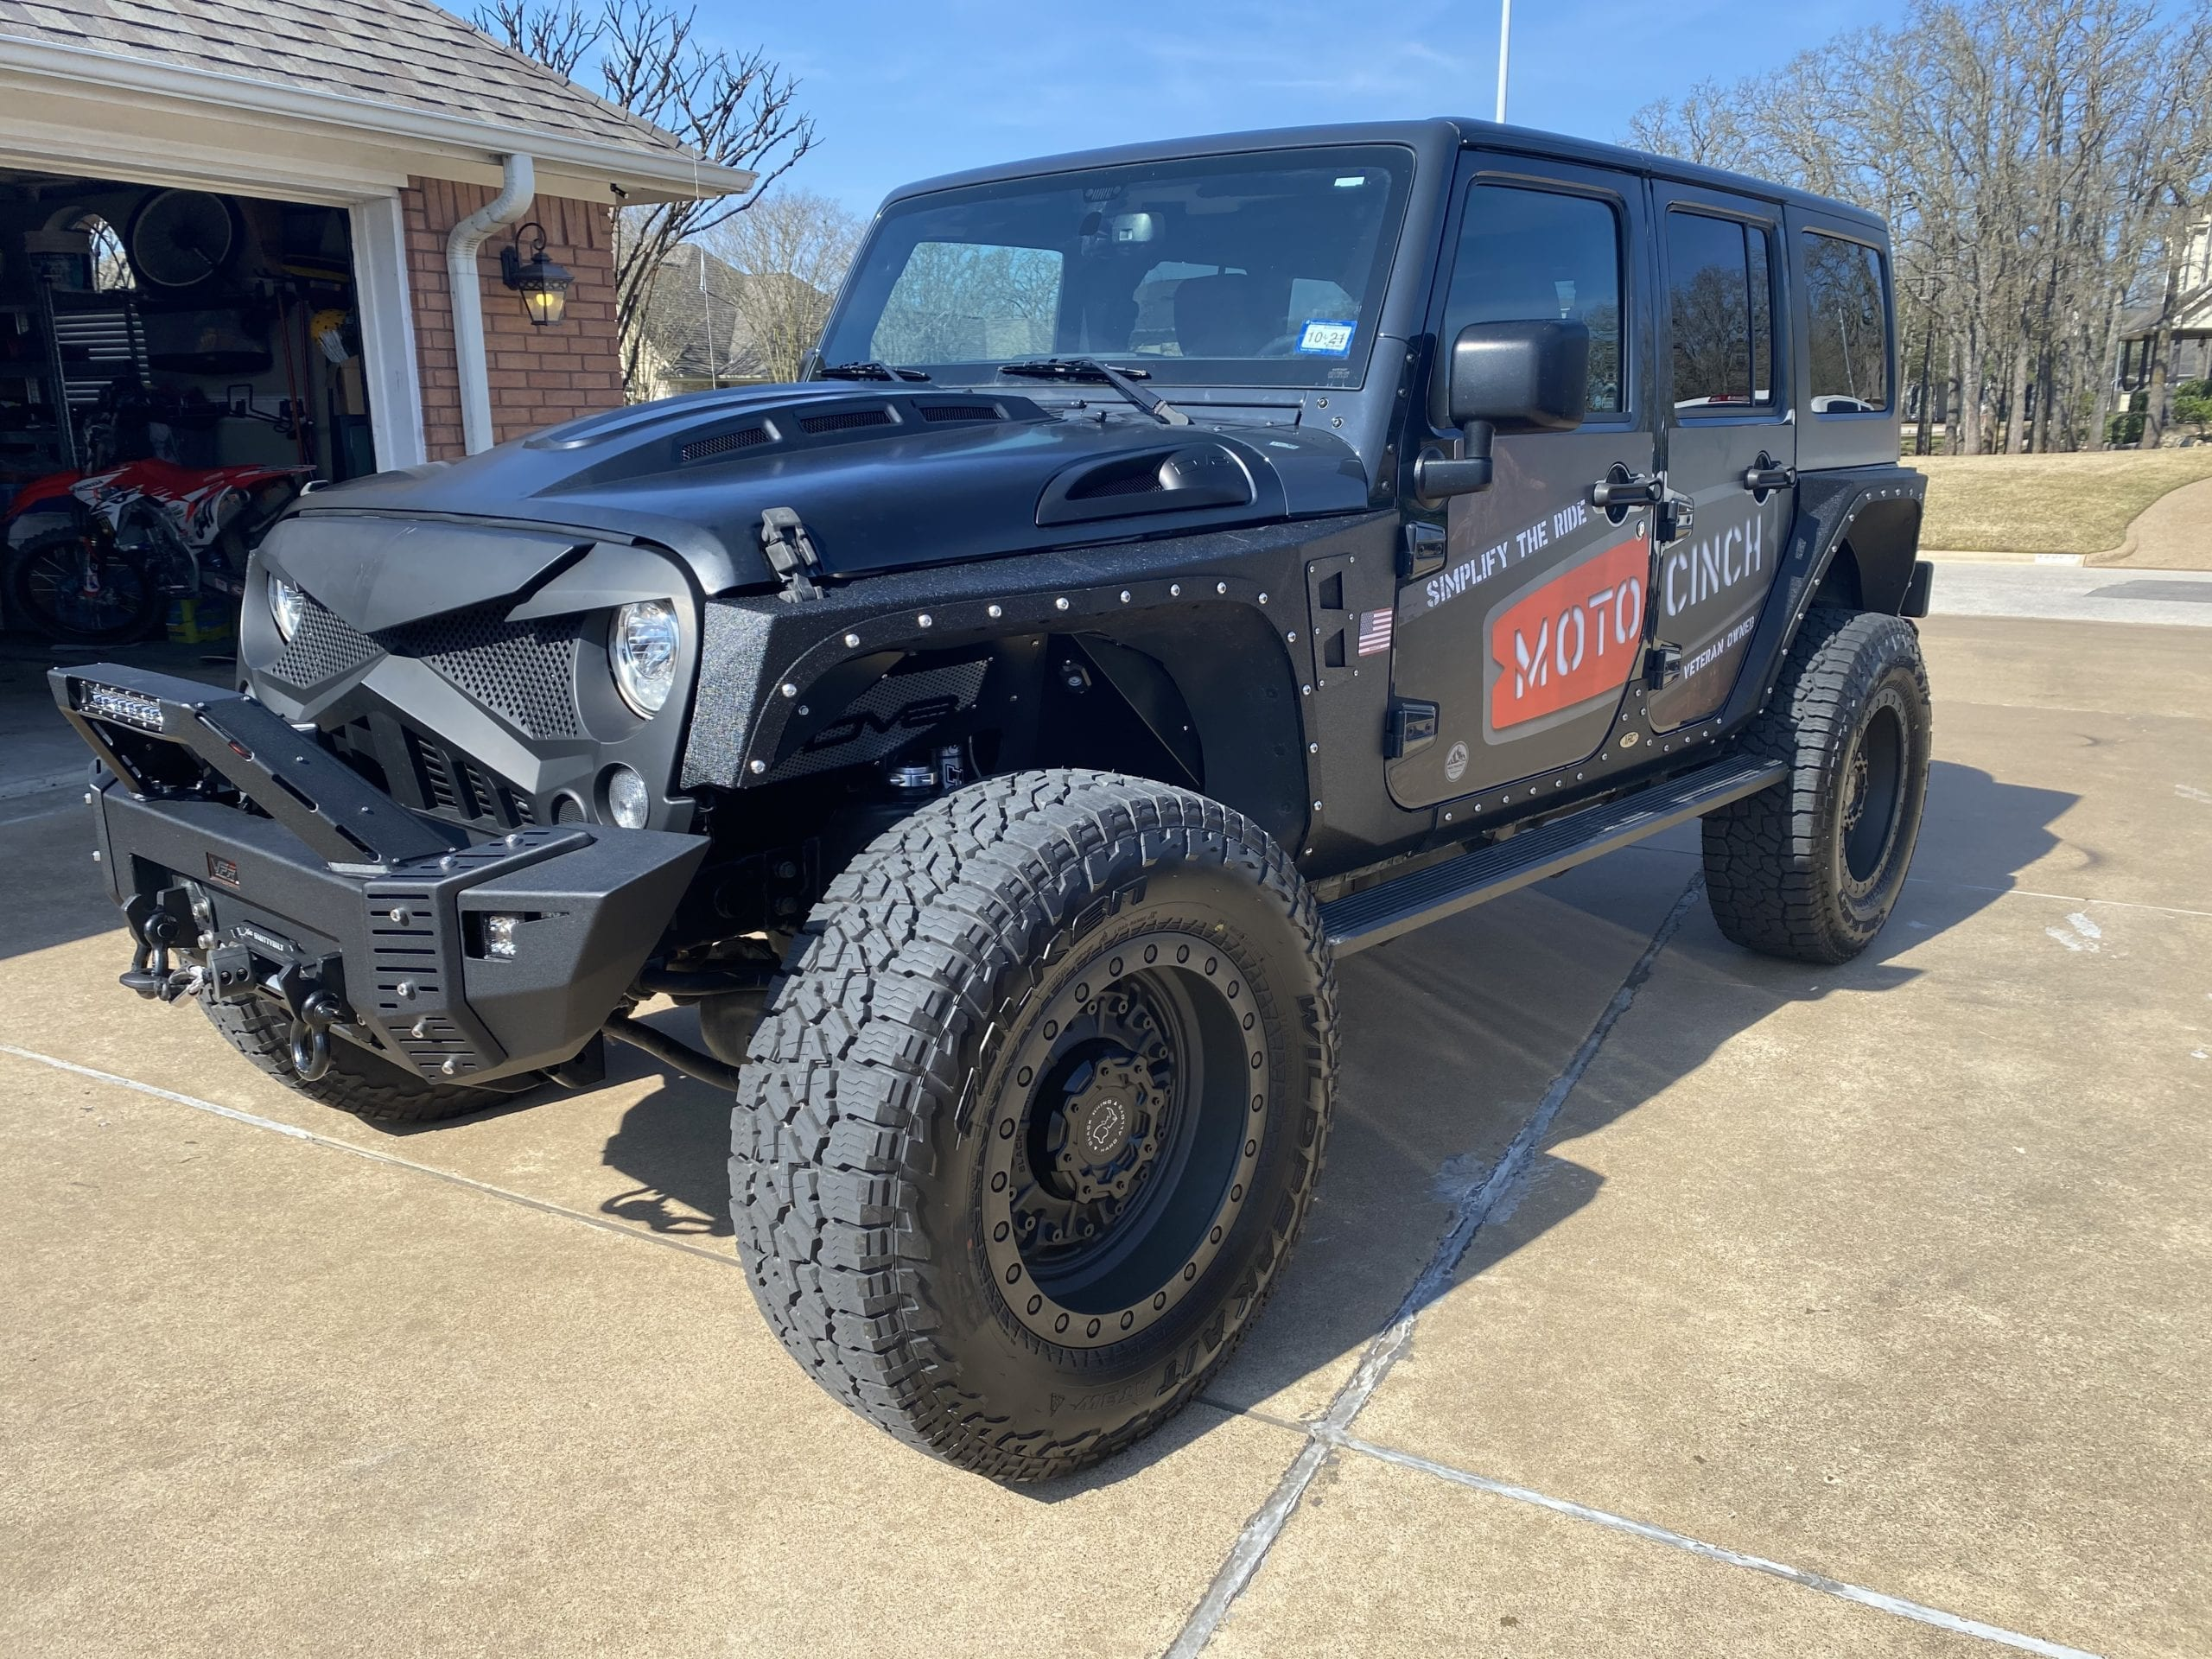 Moto Cinch Jeep